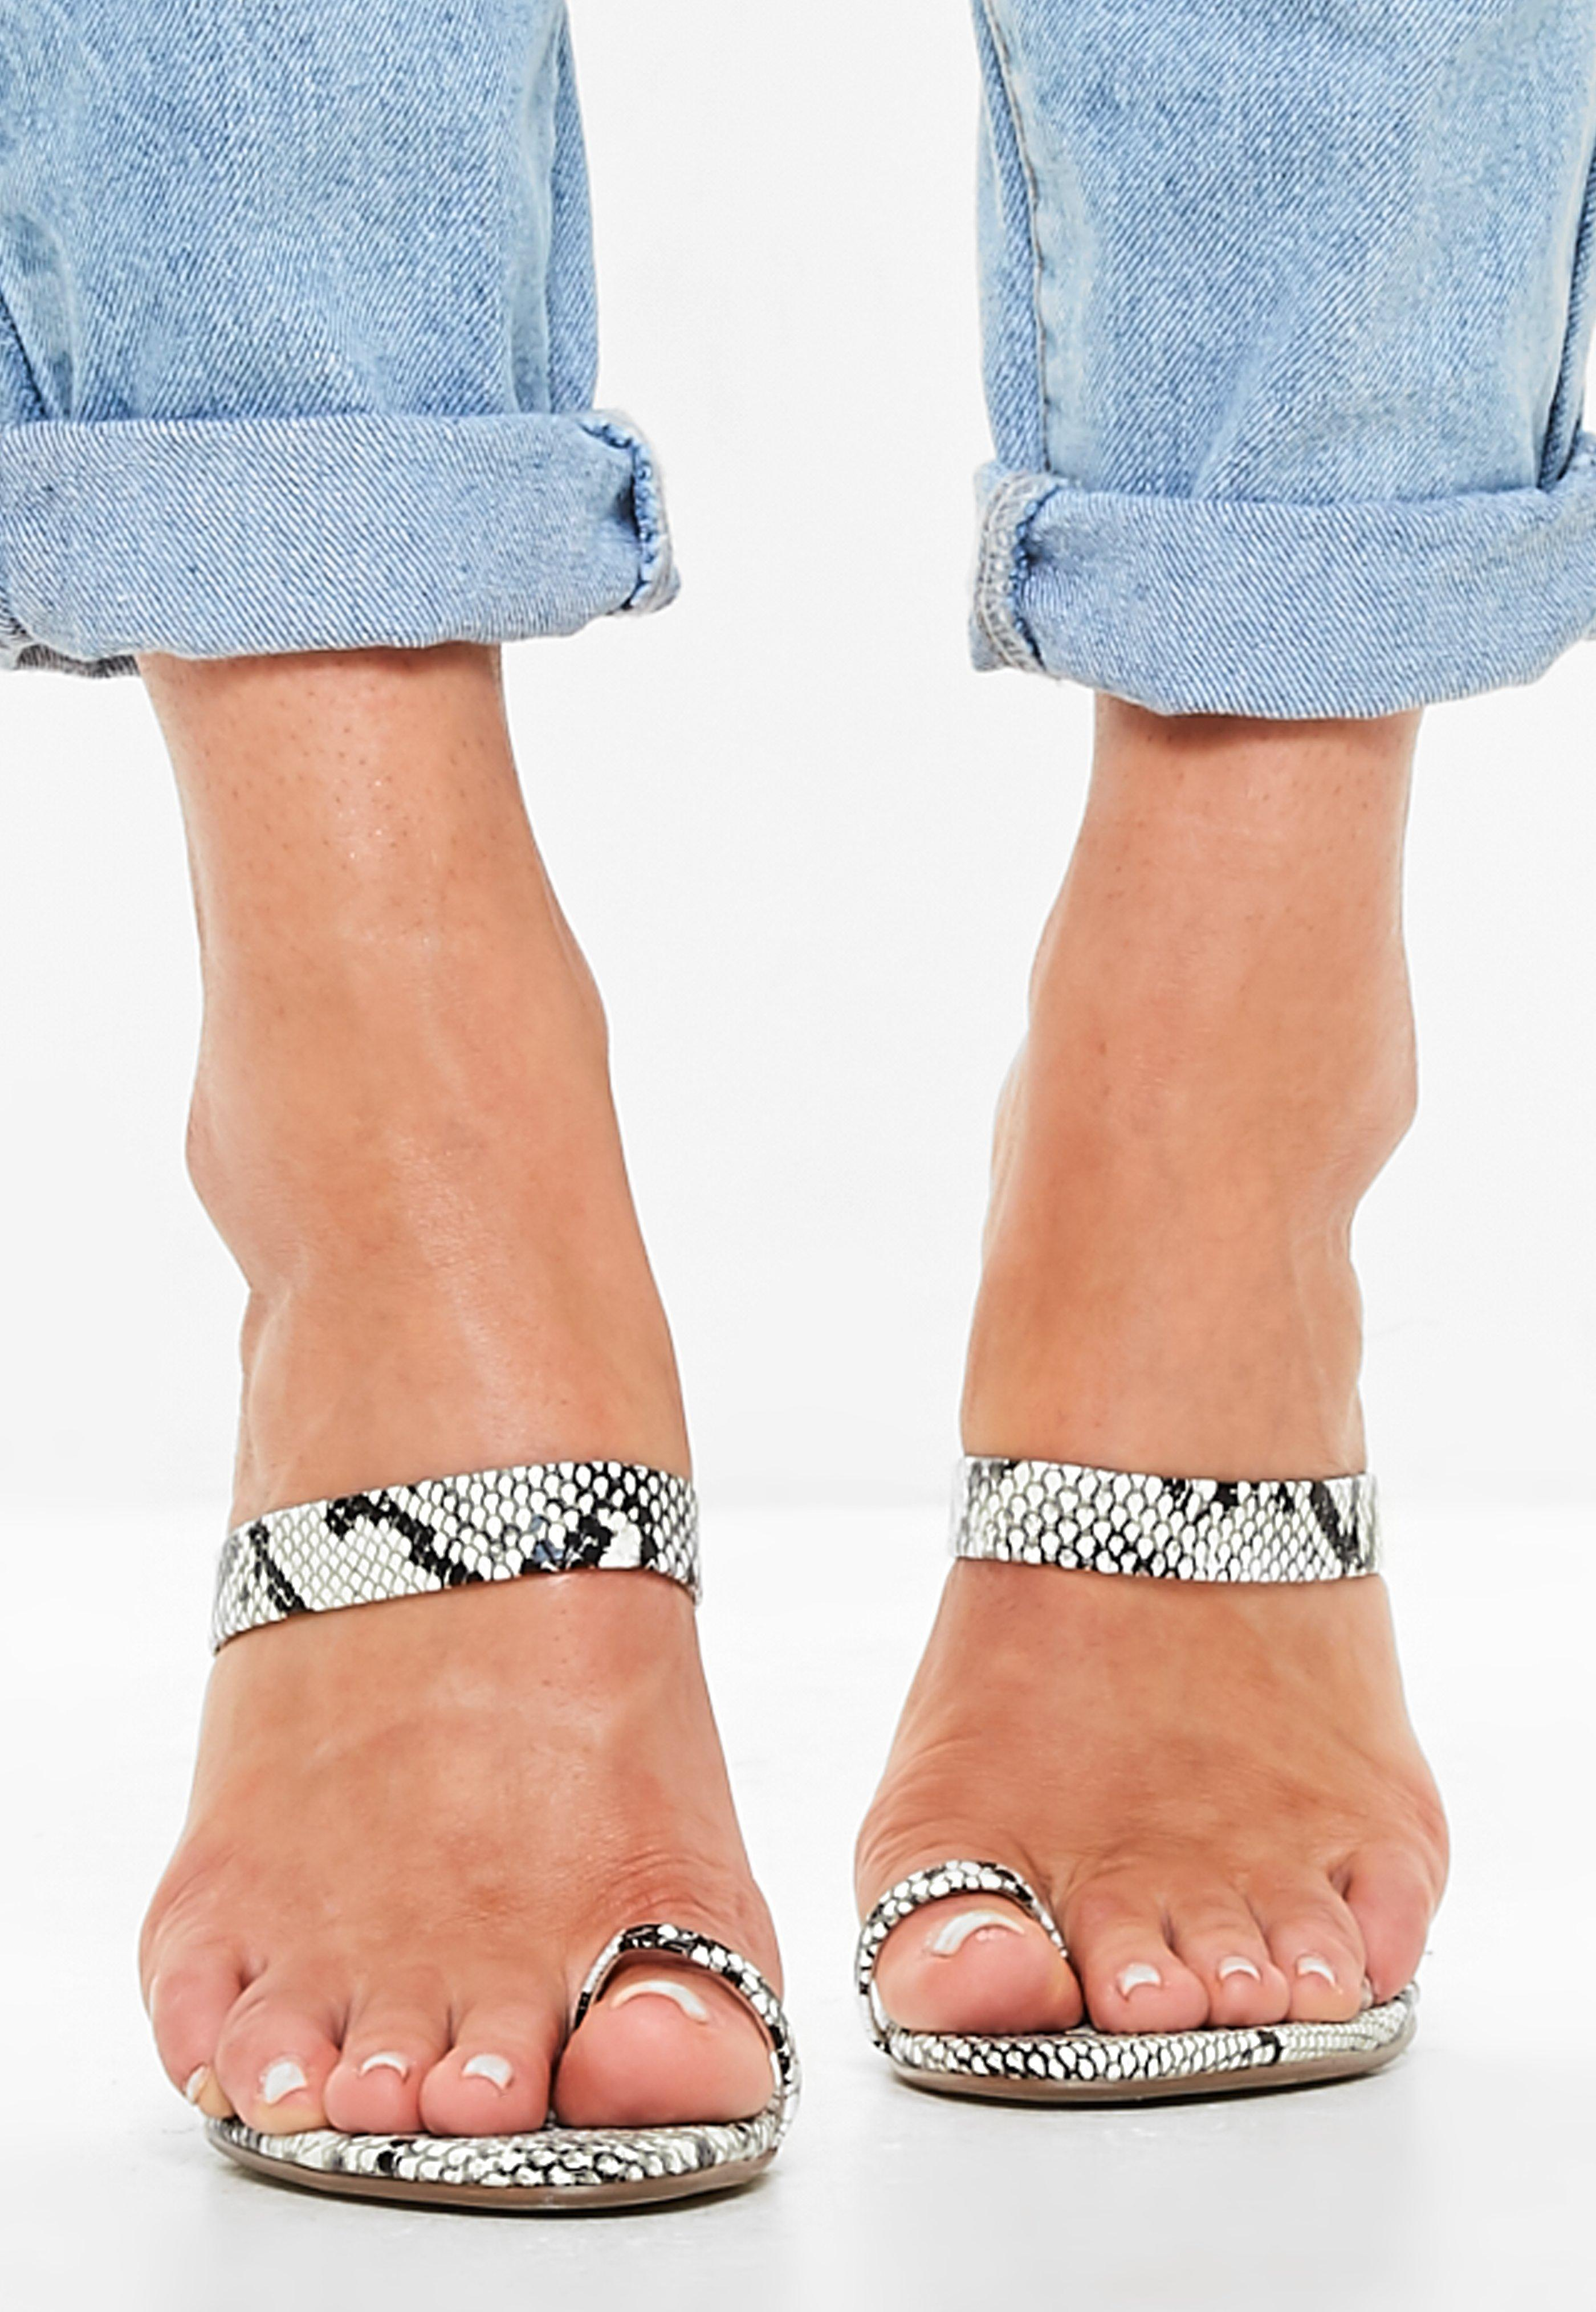 879c4b5283 Missguided - White Snake Print Toe Post Barely There Mules - Lyst. View  fullscreen